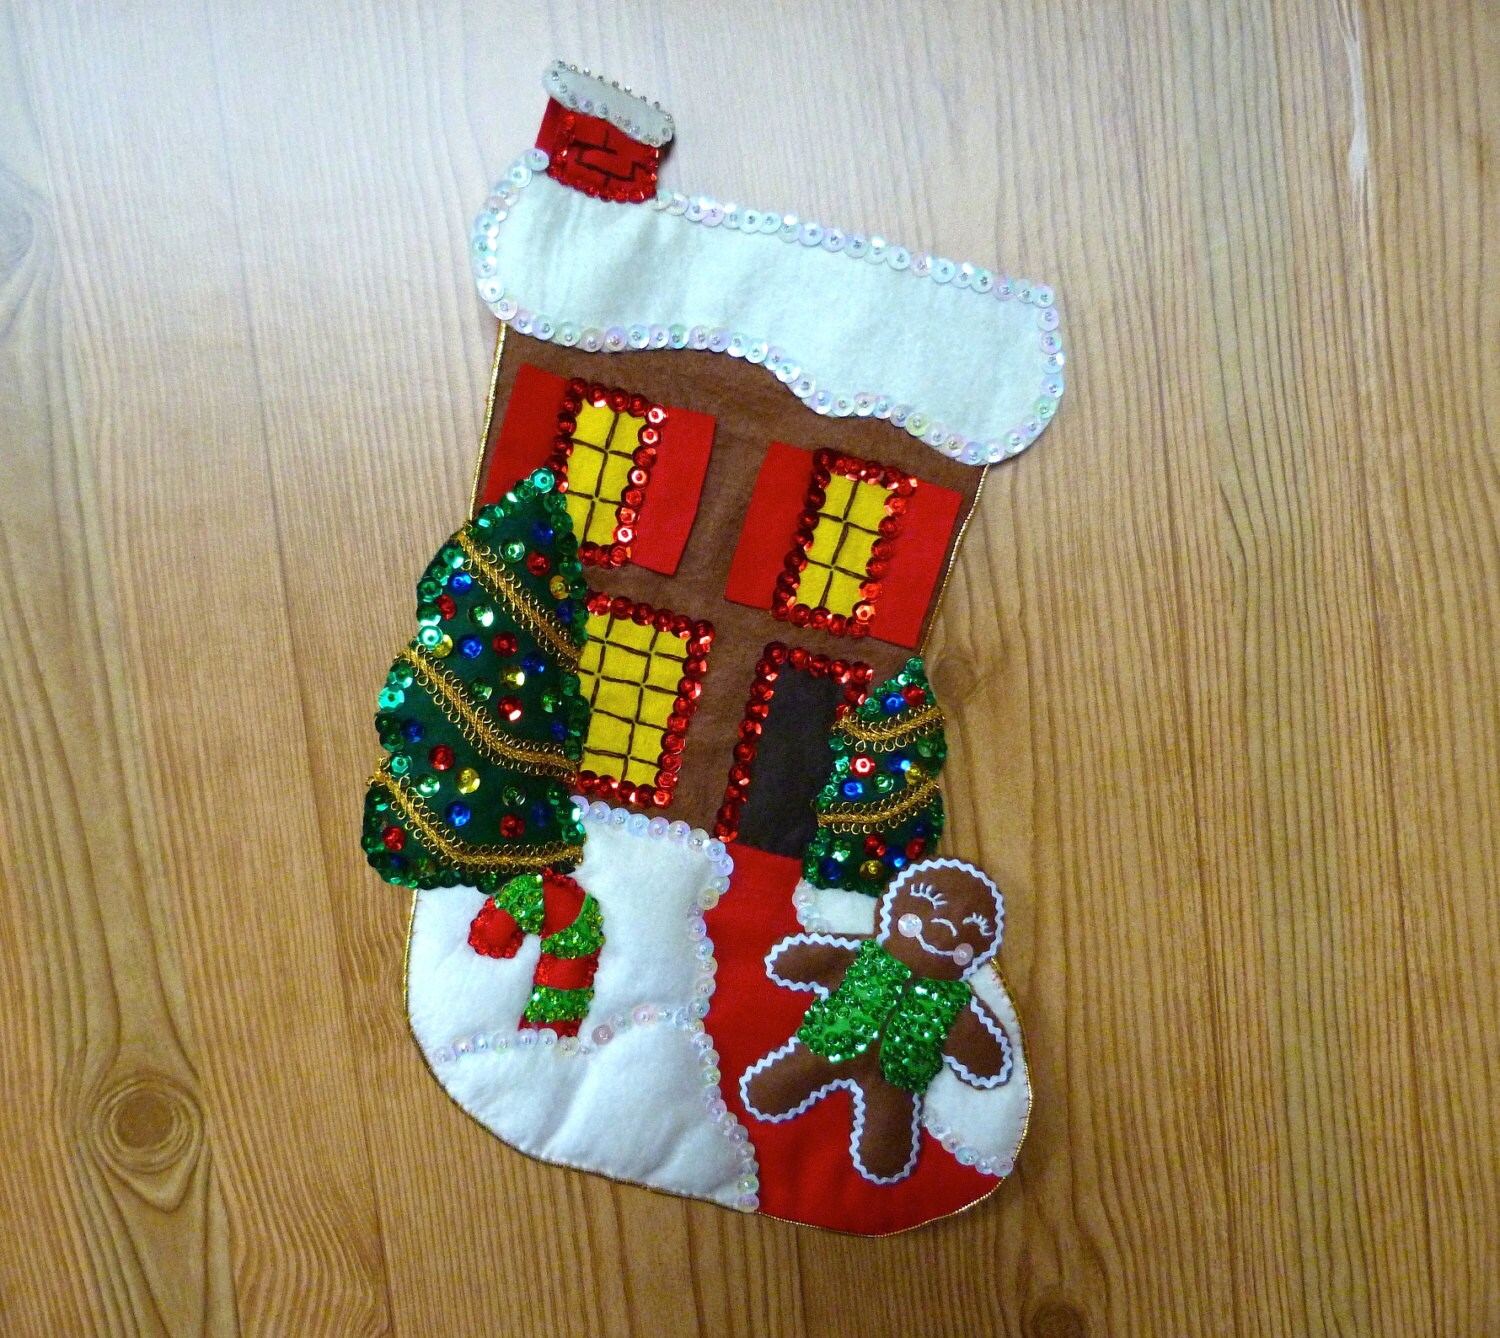 LeeWards Felt Kit Christmas Stocking Finished Gingerbread Village House Holiday Home Decor Sequins Beads Embroidery Handmade Vintage Older